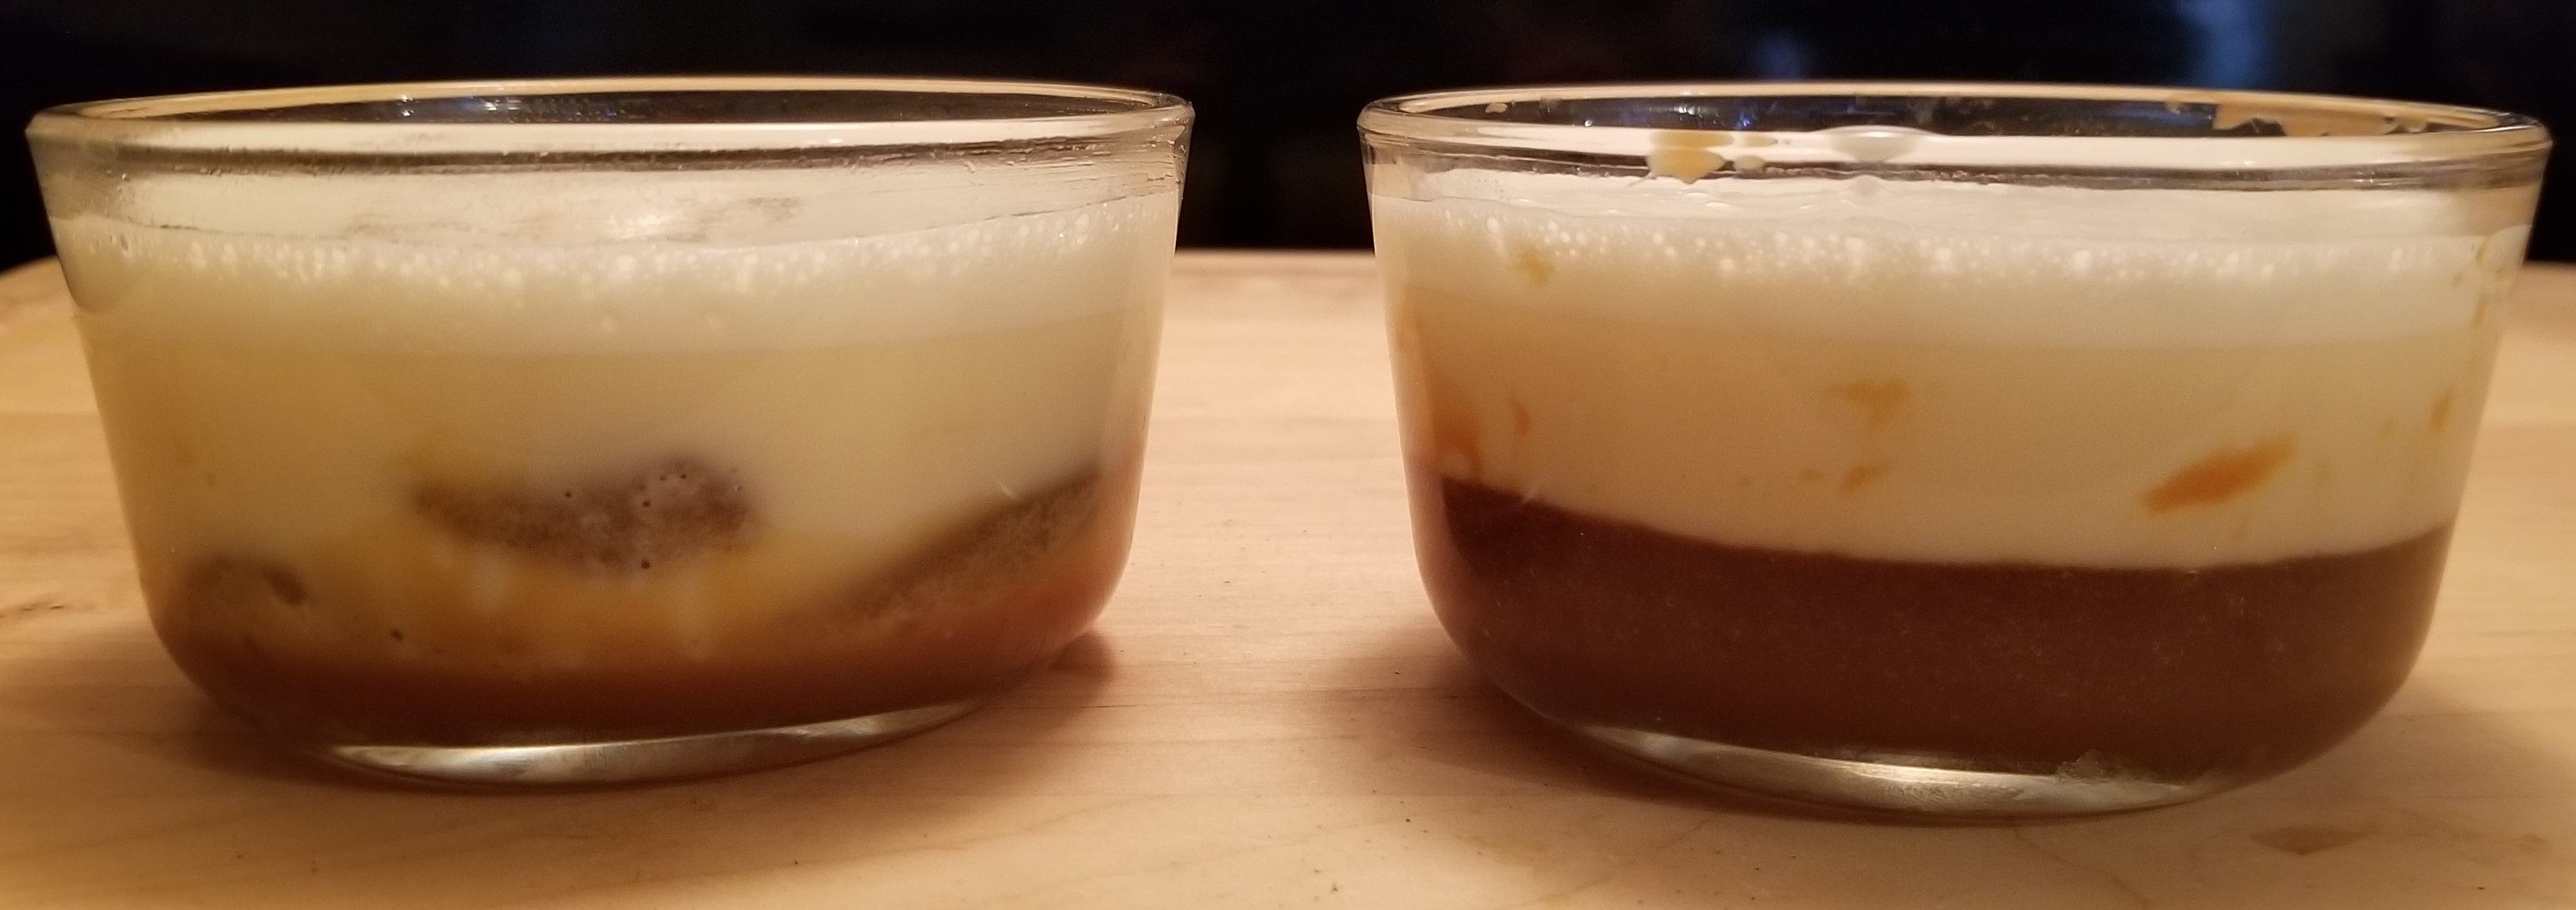 010 left custard first, right cake batter first